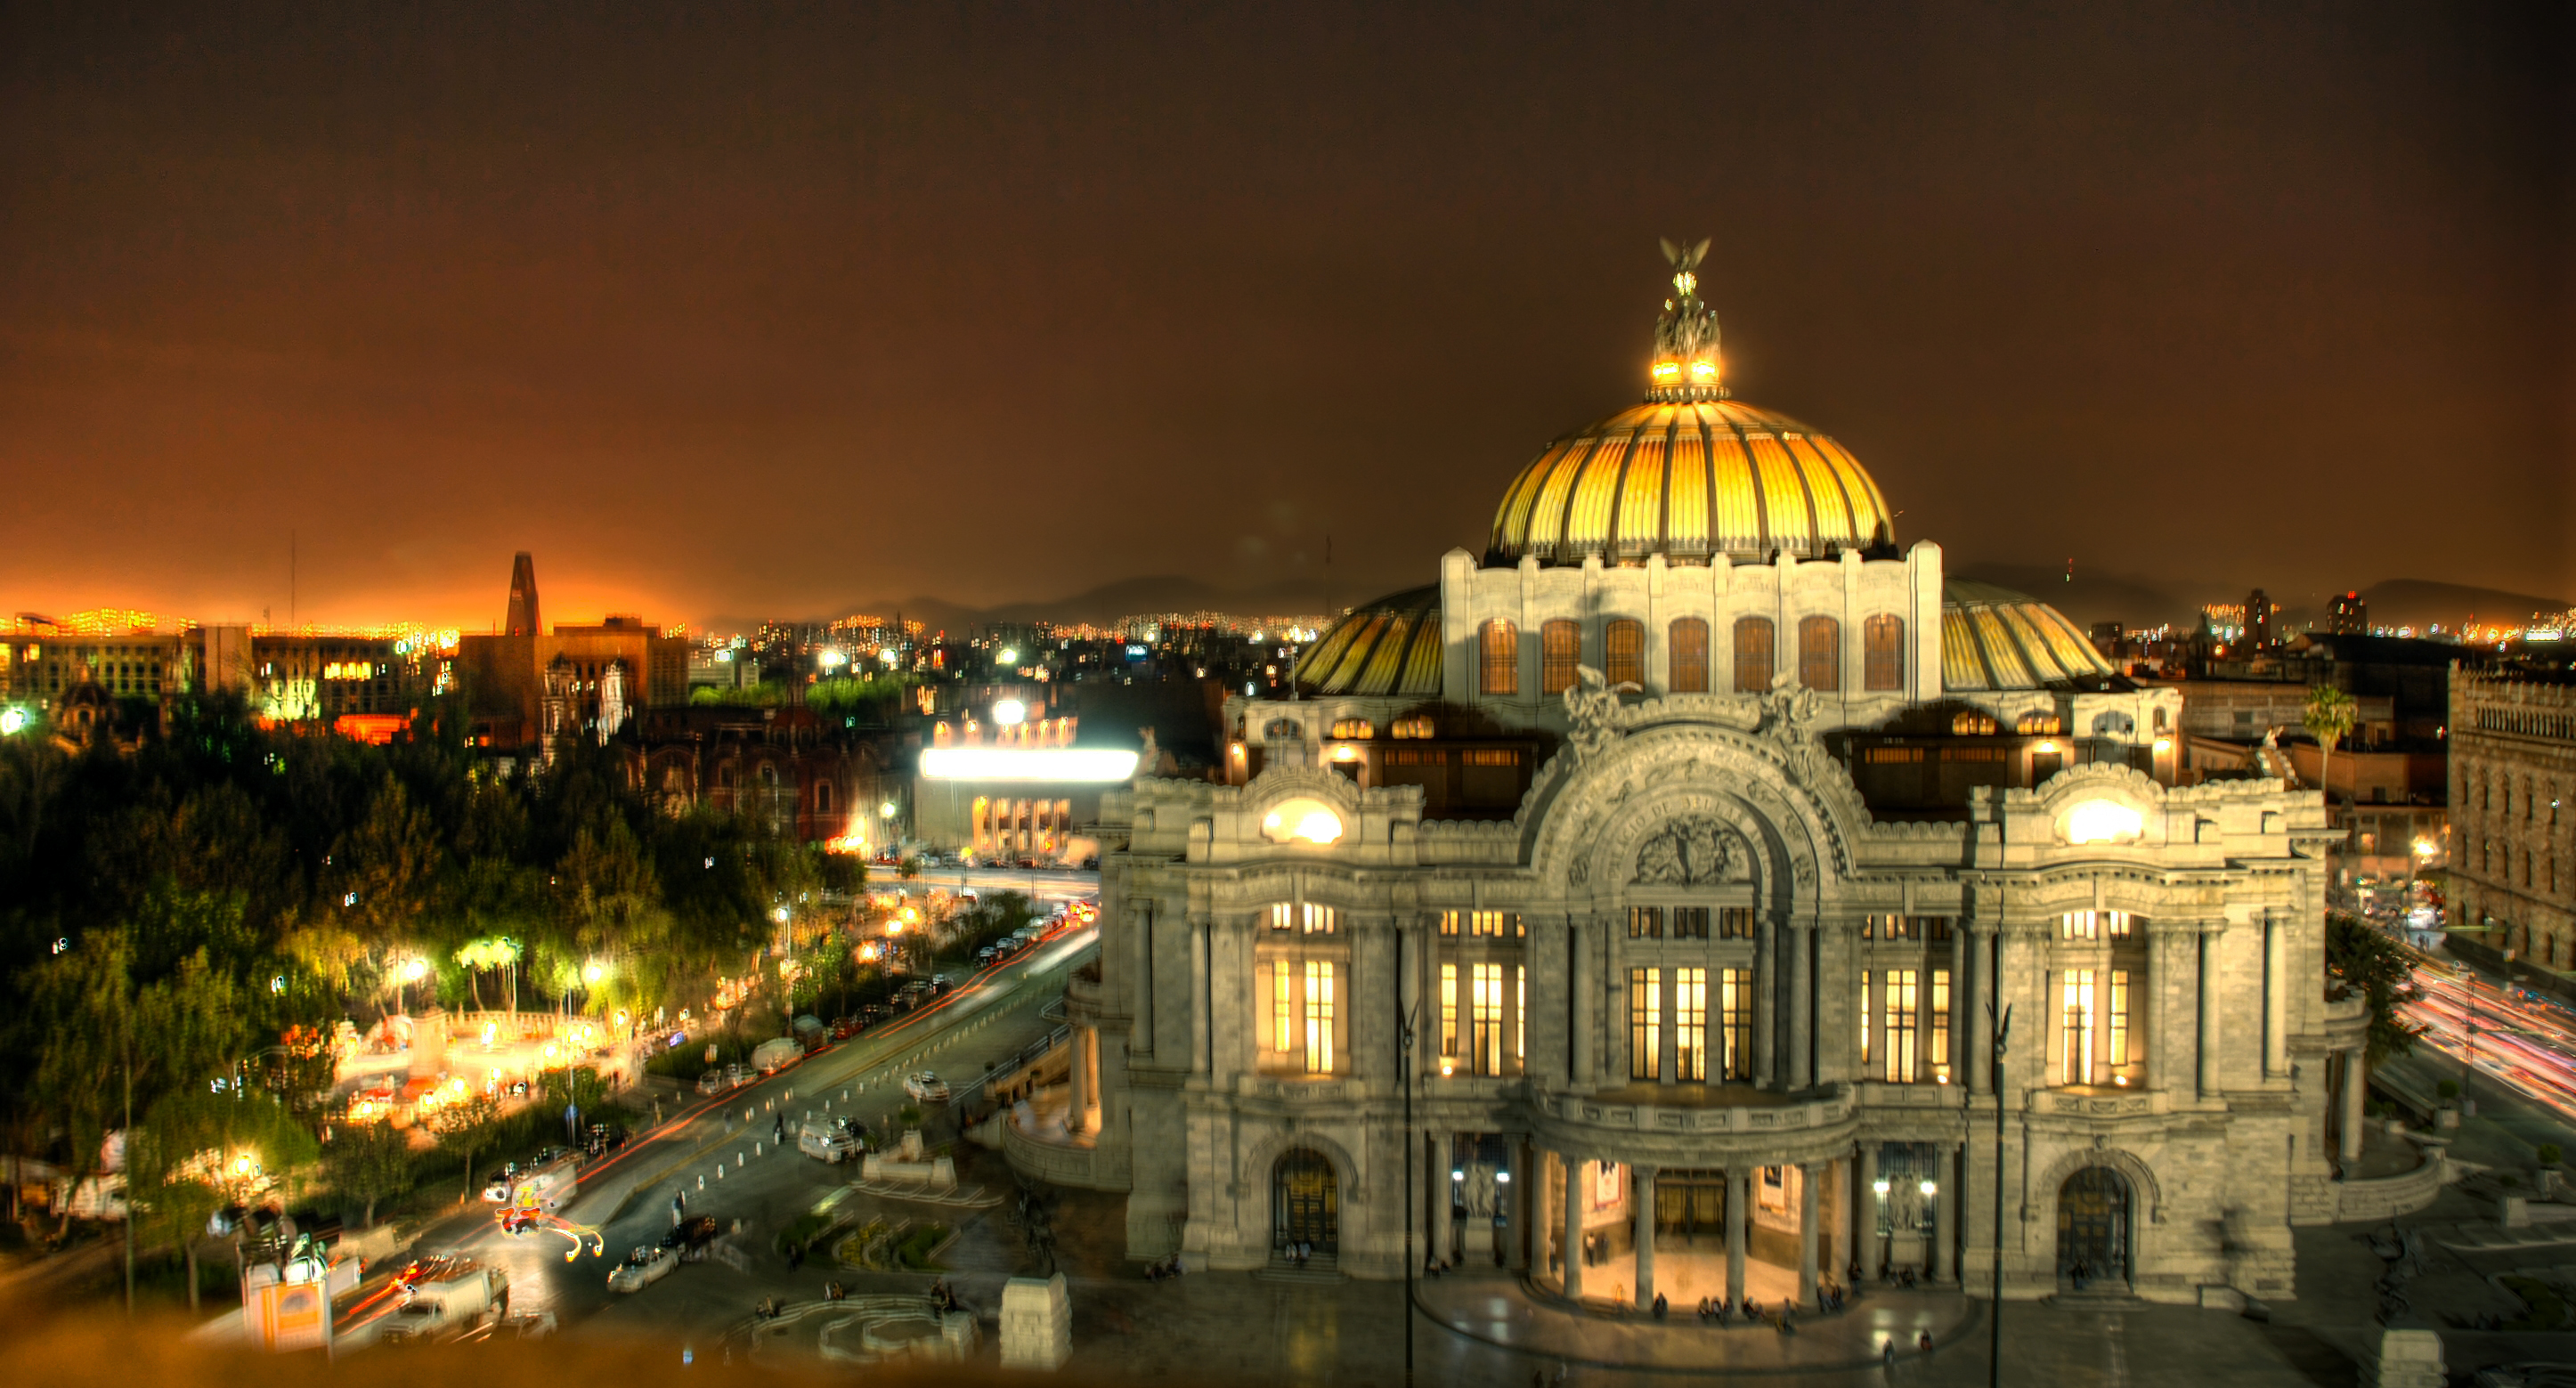 There is no official religion in Mexico, since the constitution guarantees separation of church and state. However, more than nine-tenths of the population are at least nominally affiliated with Roman Catholicism. Photo Credit © Eneas de Troya, Flicker.